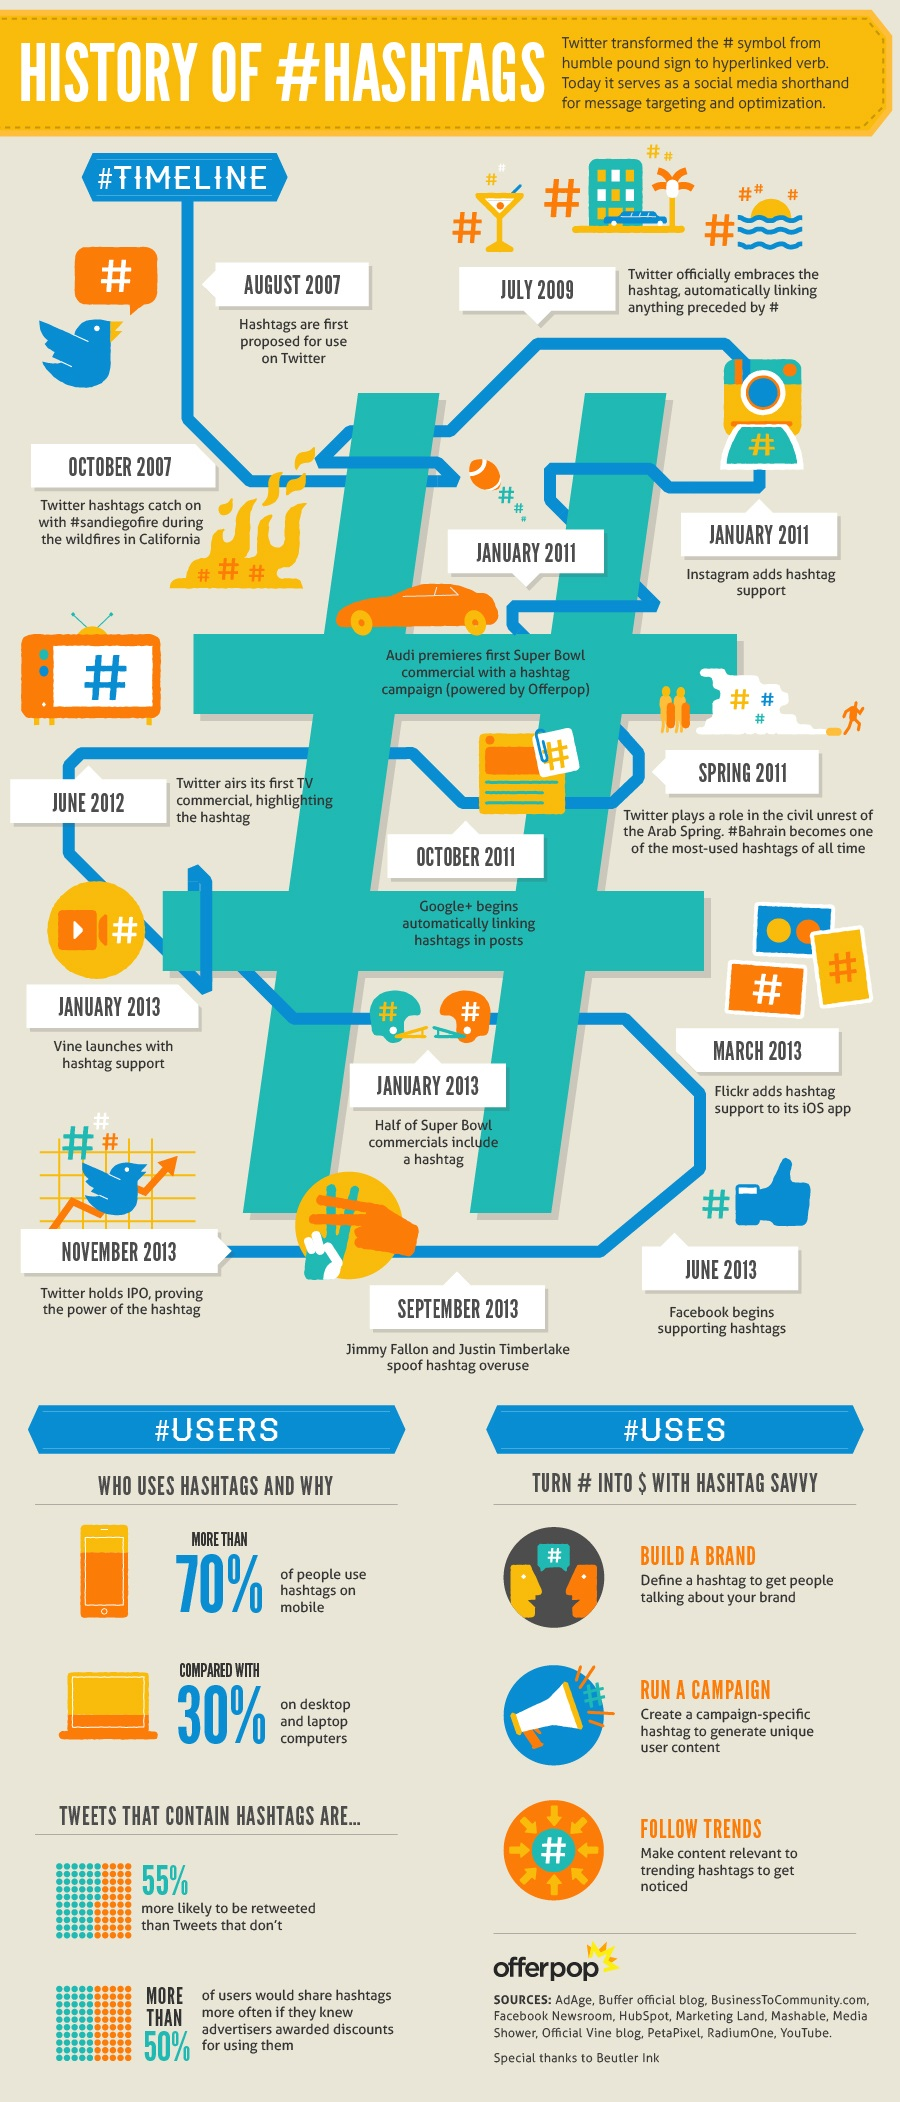 History of #Hashtags